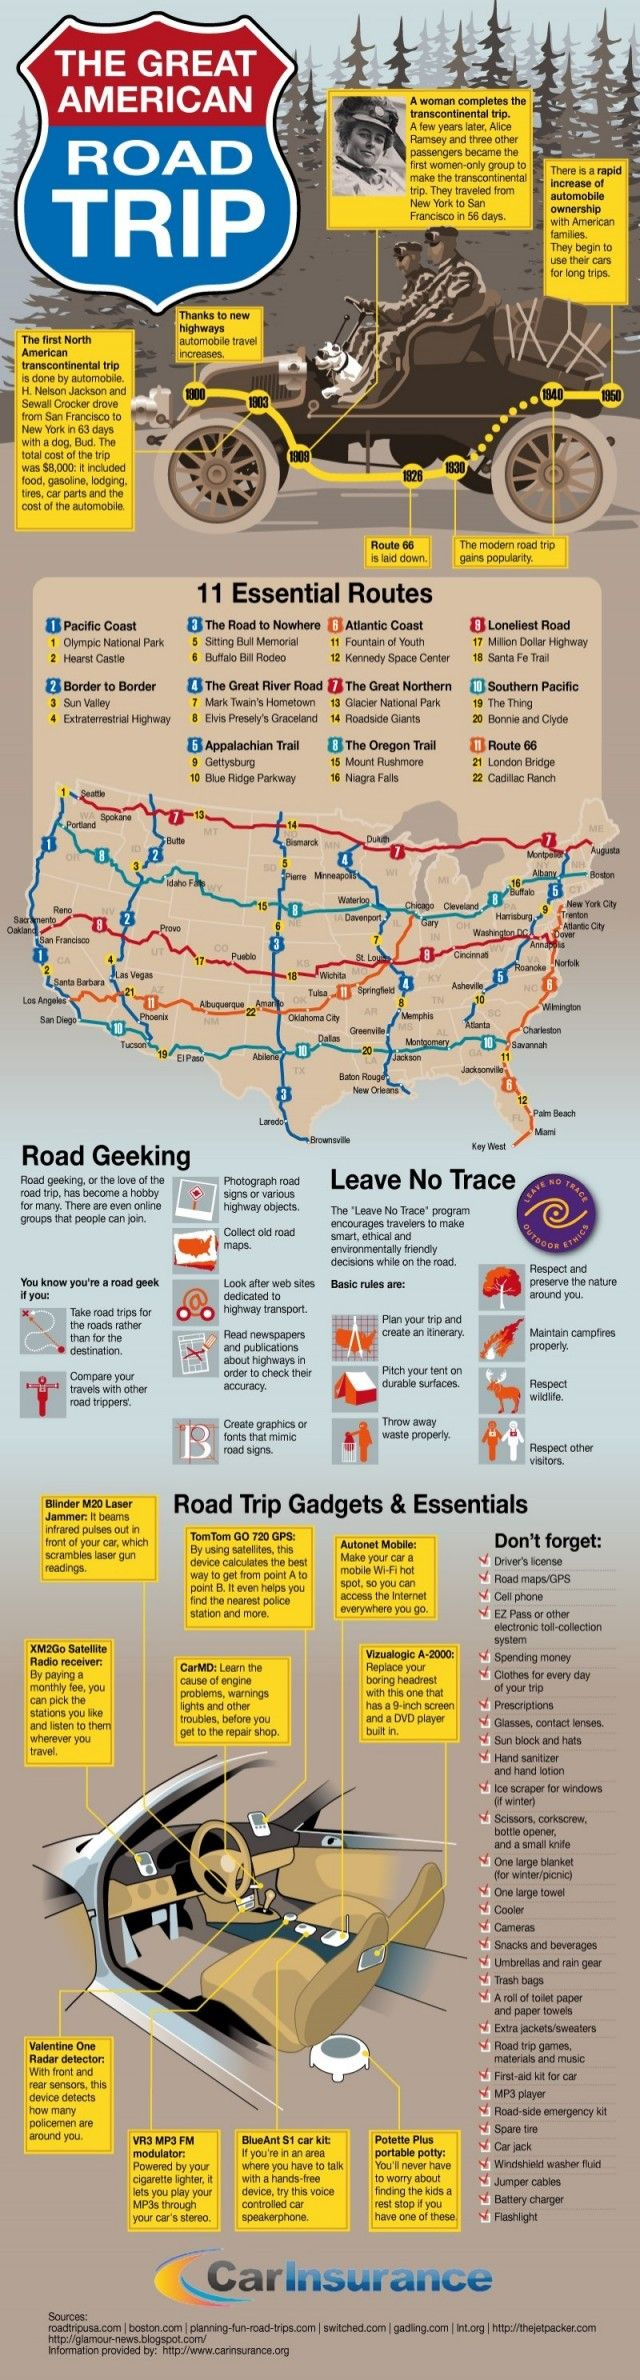 roadtrip across america: 11 essential road trip routes + tips